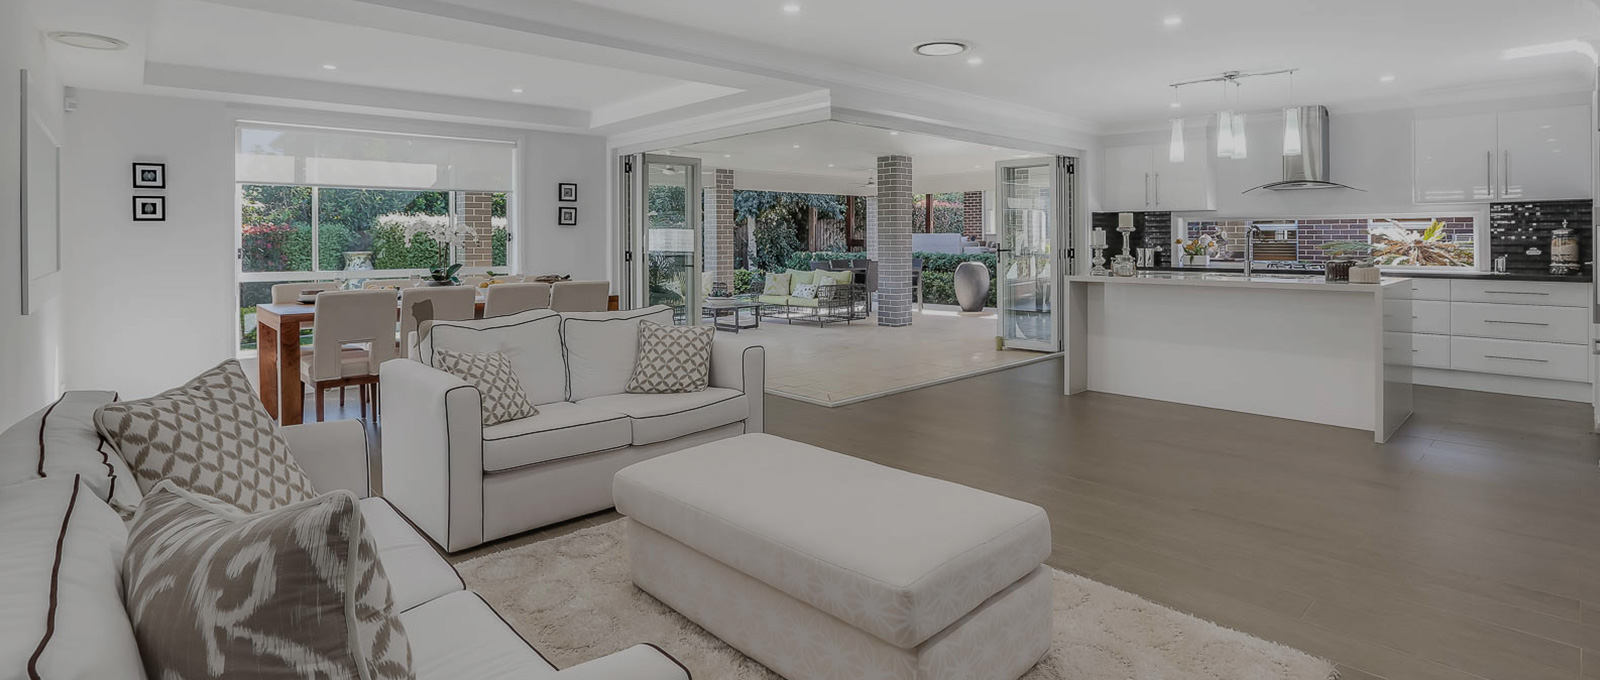 Interior of a modern house with a white sofa set and a dining area